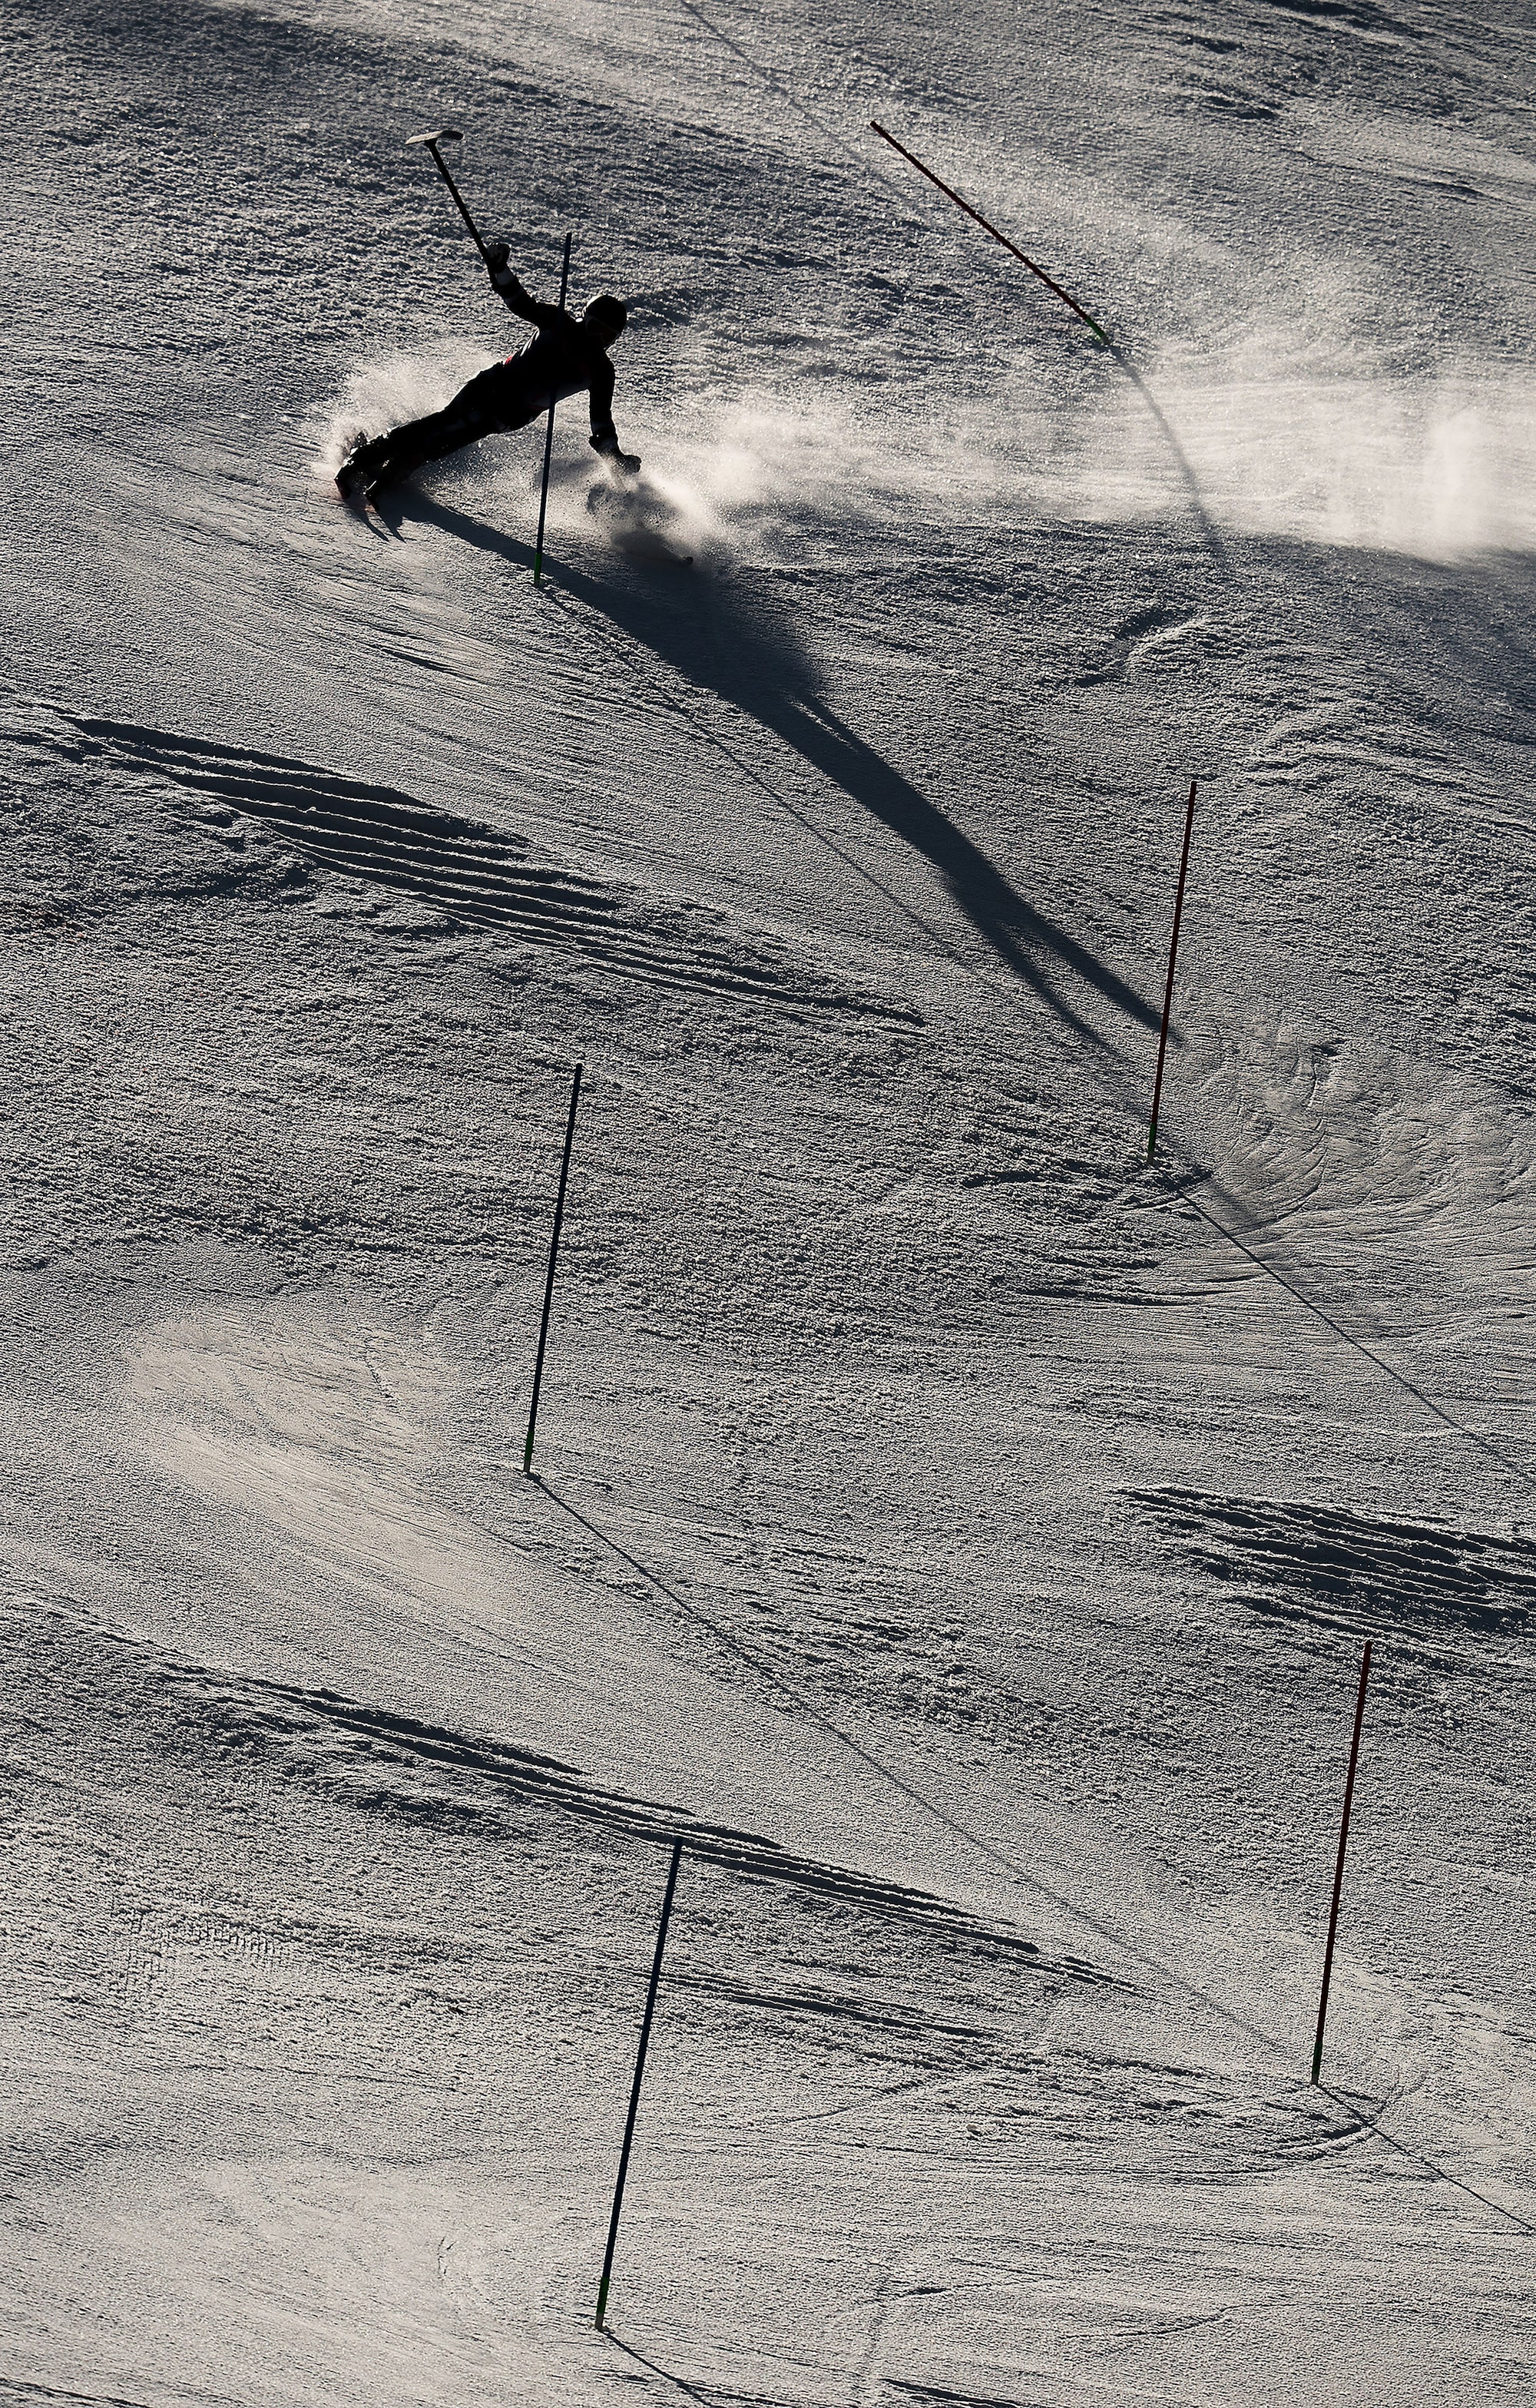 Bob-Martin-sony-alpha-9-skier-silhouetted-against-the-snow-attempts-a-fast-slalom